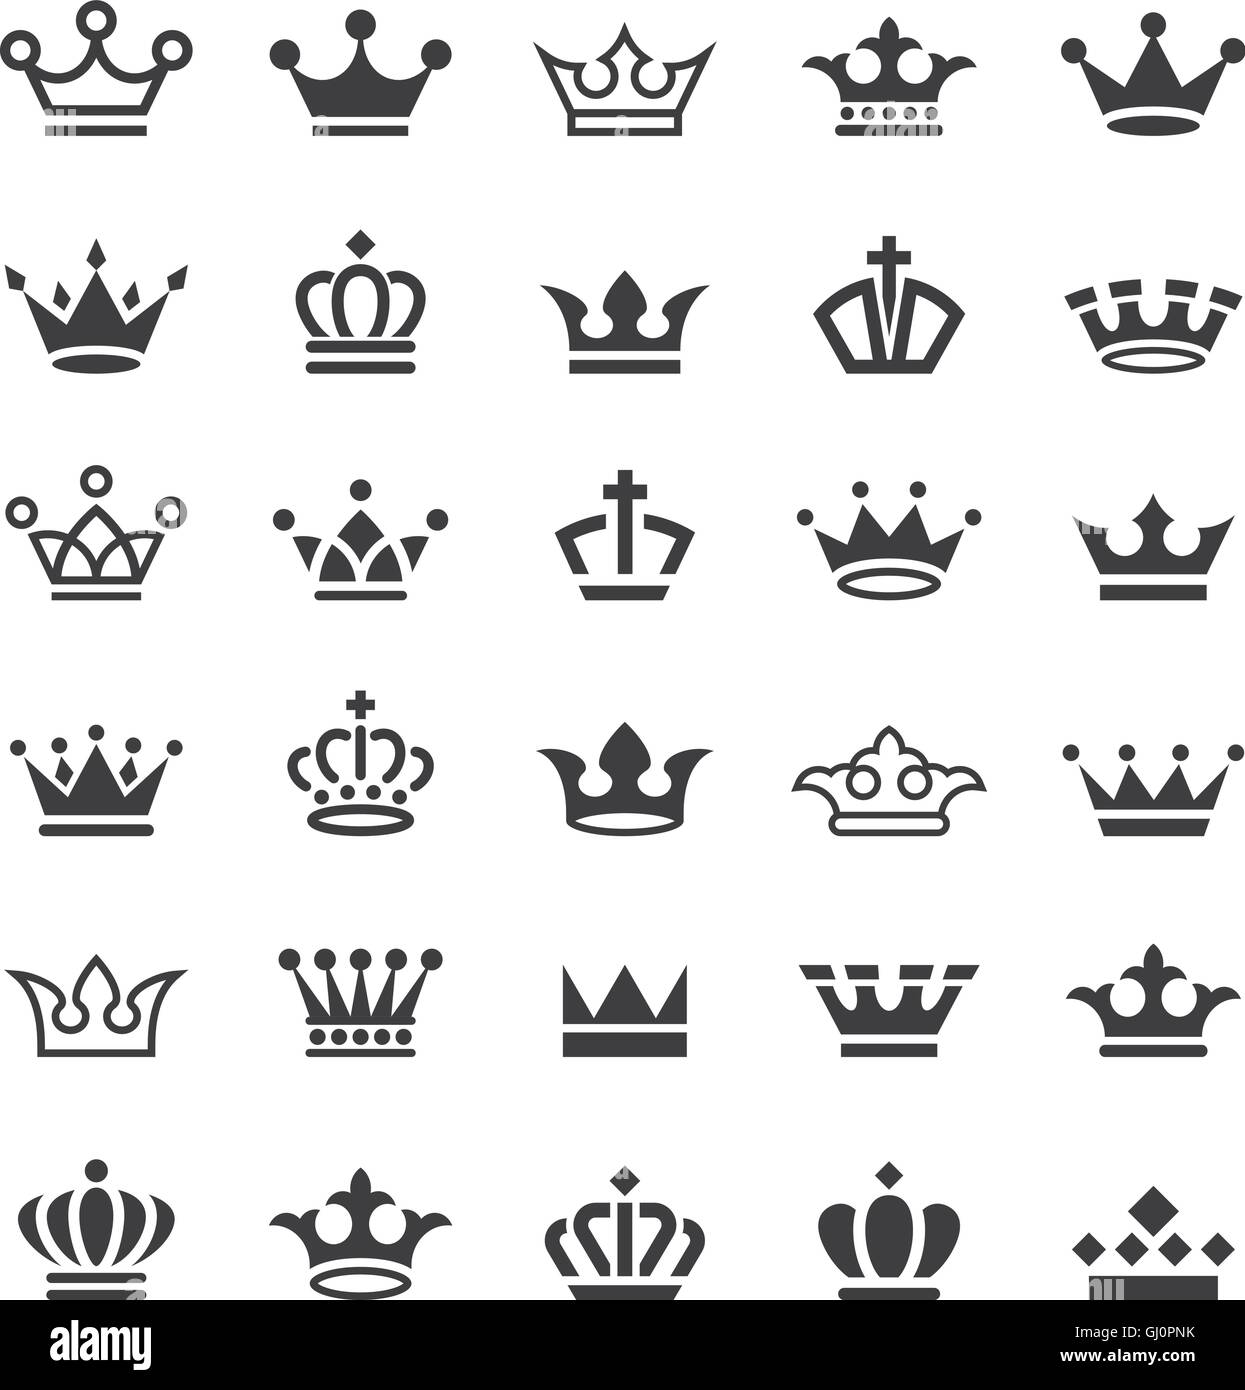 Big collection of thirty vector crown simple black and white icons - Stock Image